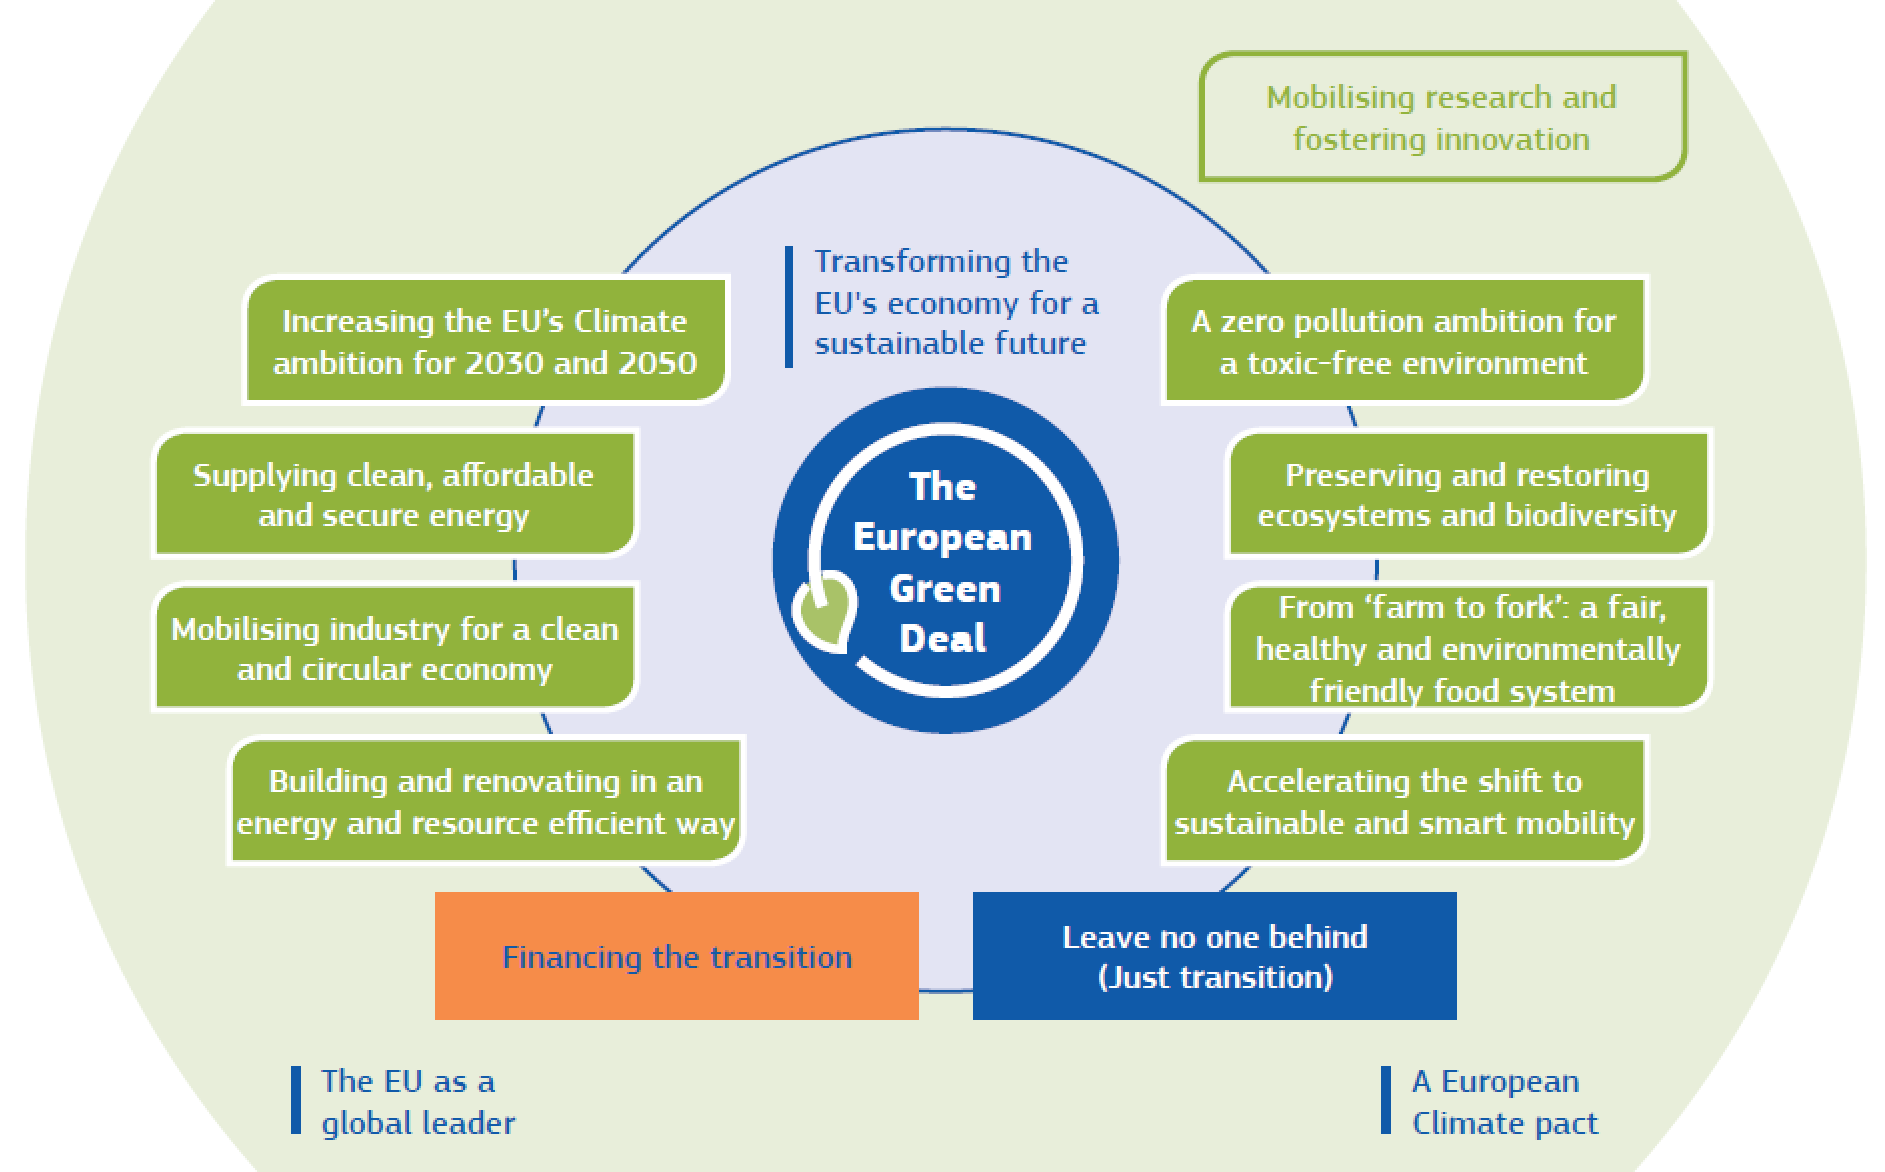 Diagram of Europe's Green Deal